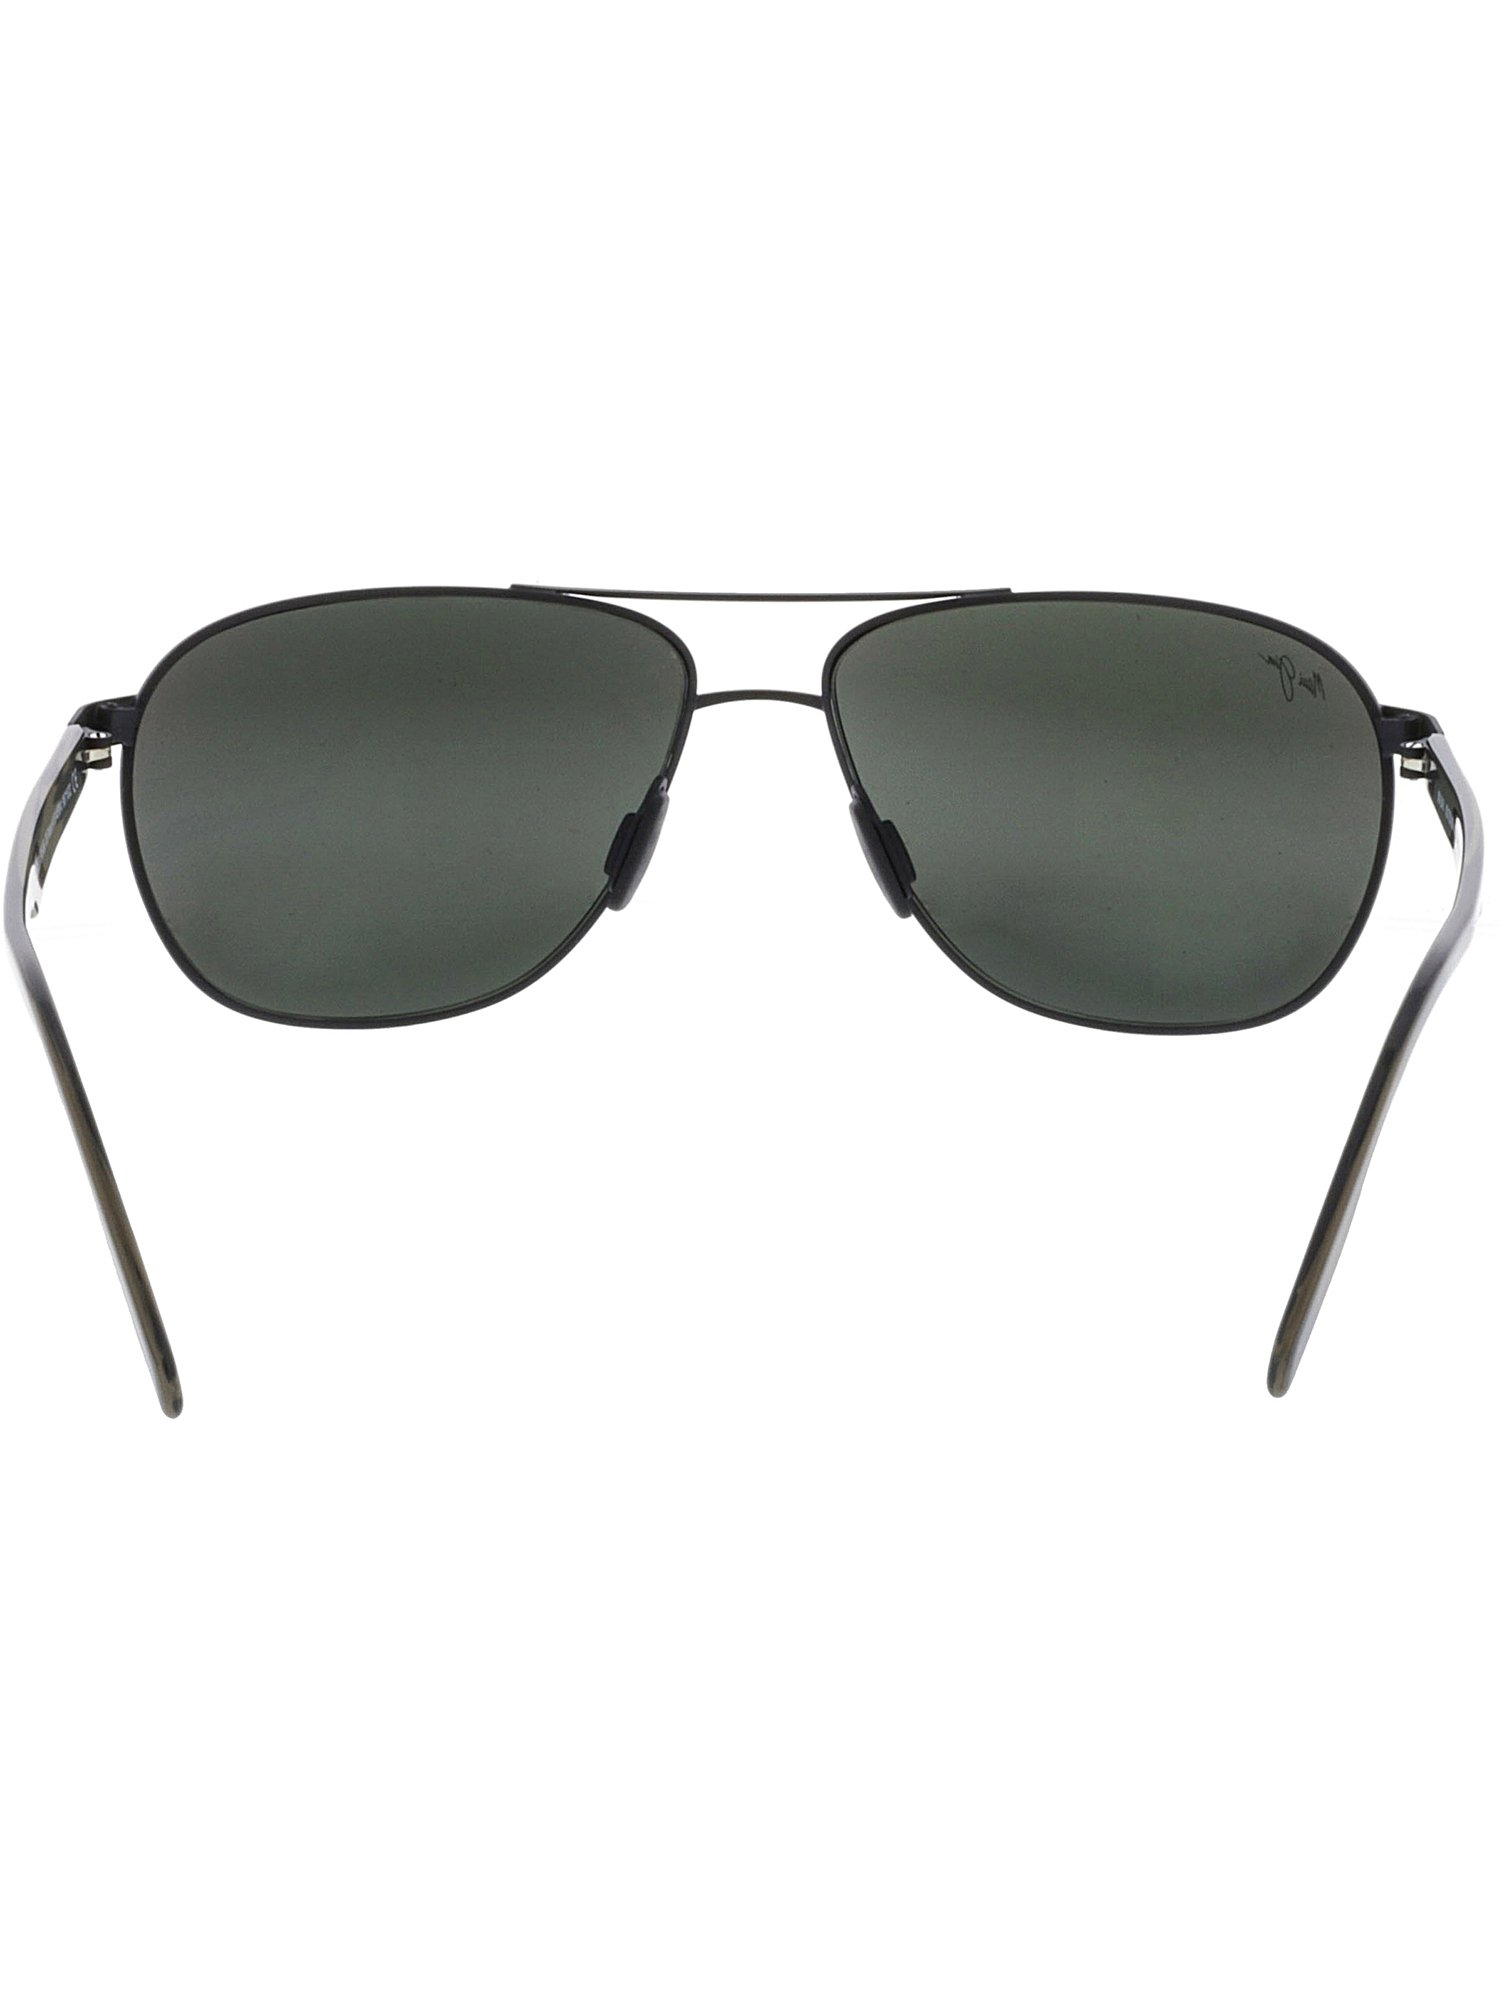 5daf5eca365c Maui Jim - Maui Jim Men's Polarized Castles 728-2M Black Aviator Sunglasses  - Walmart.com